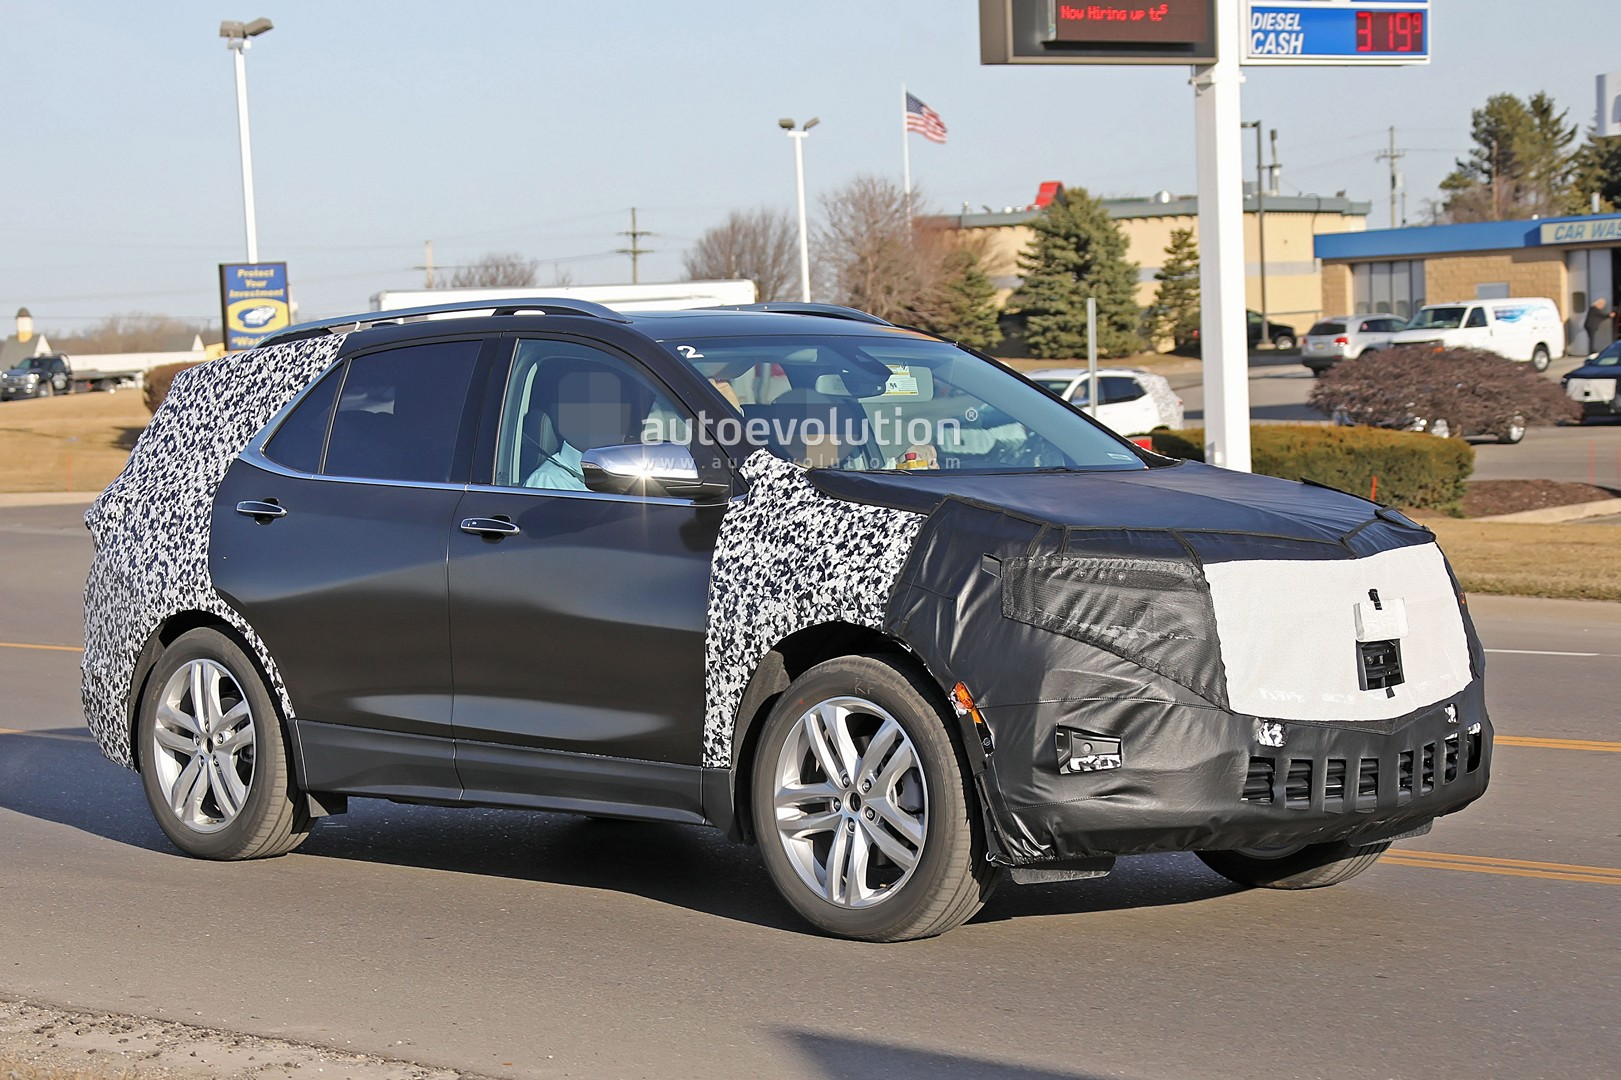 2020 Chevy Equinox Spied With Blazer Front End Design ...